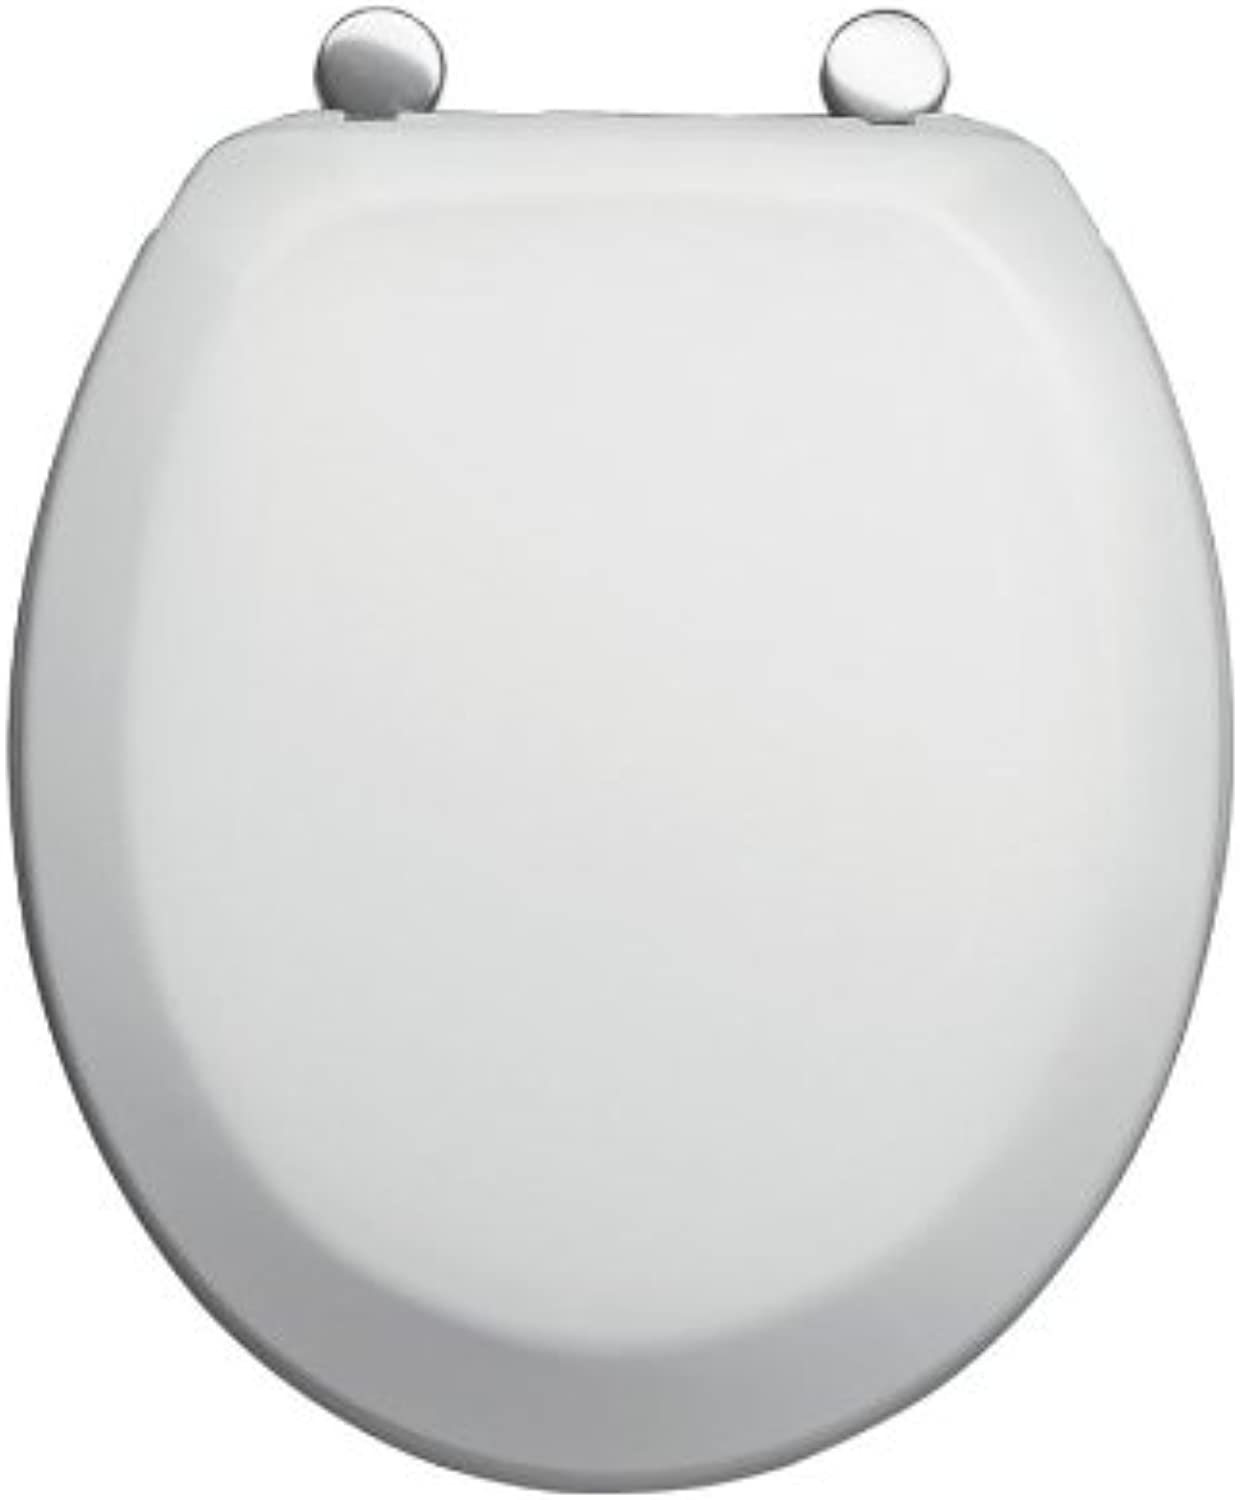 Armitage Shanks S403201 White Orion Plus Toilet Seat and Cover with